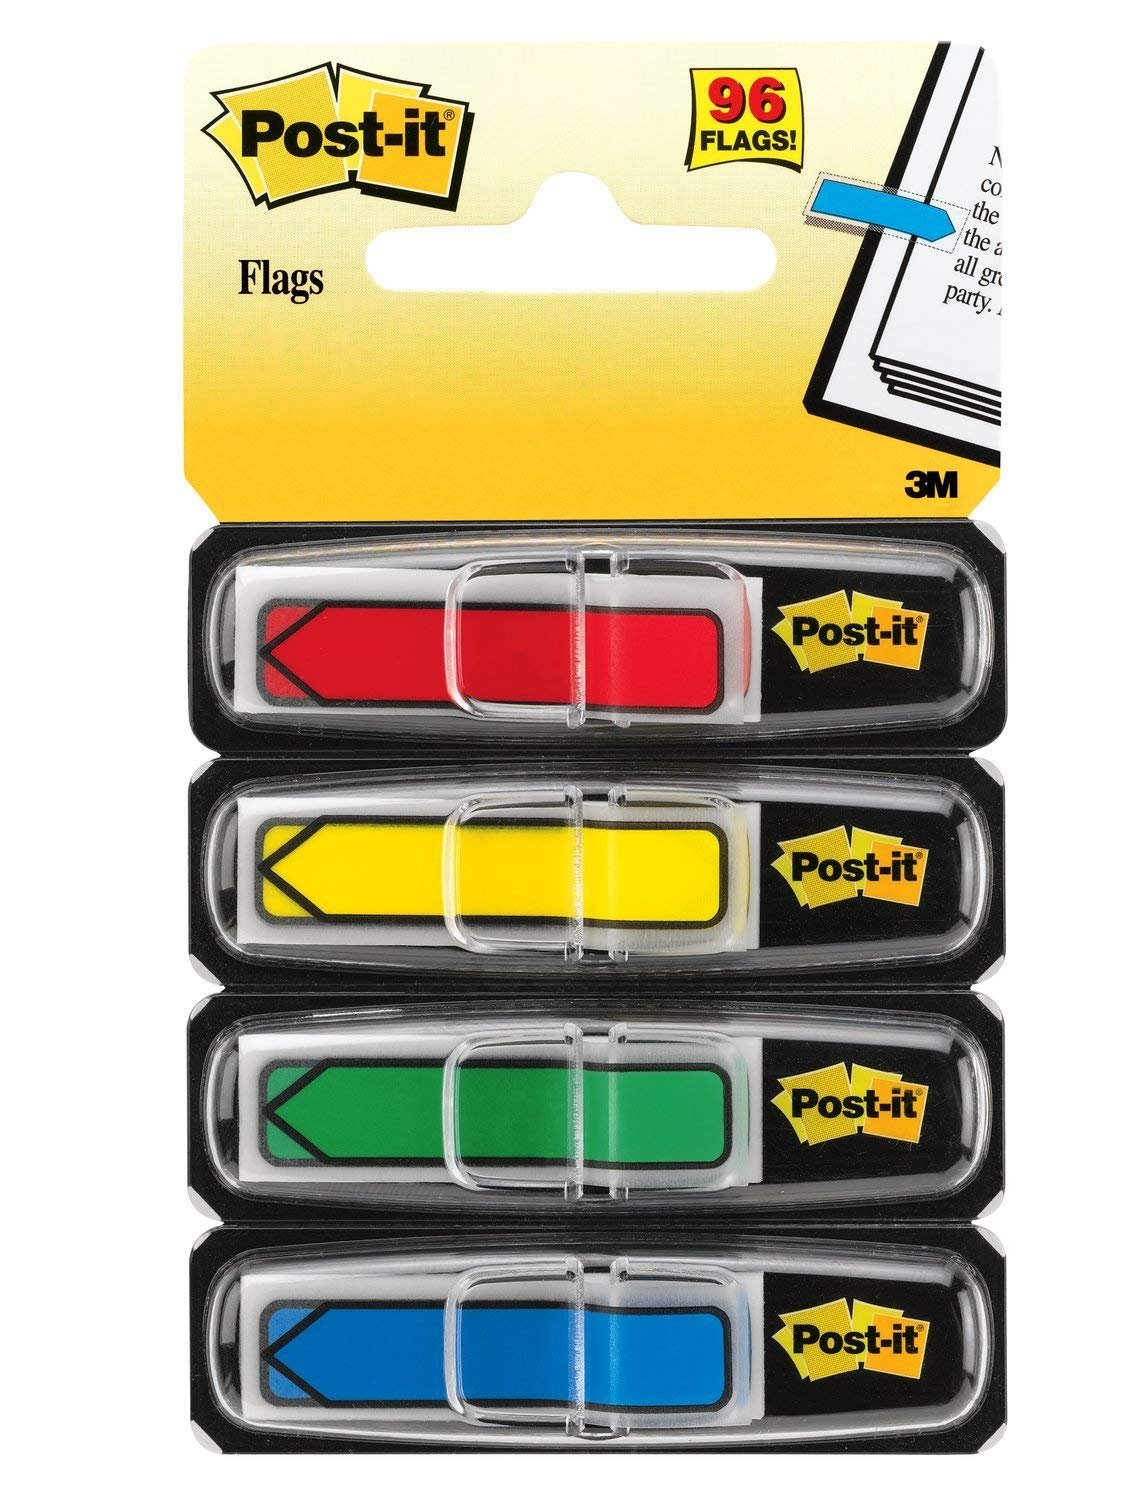 Limited Edition Wide Arrow Flags Post-it. 684-ARR3 Assorted Primary Colors.47 in 4 Dispensers//Pack, 24//Dispenser